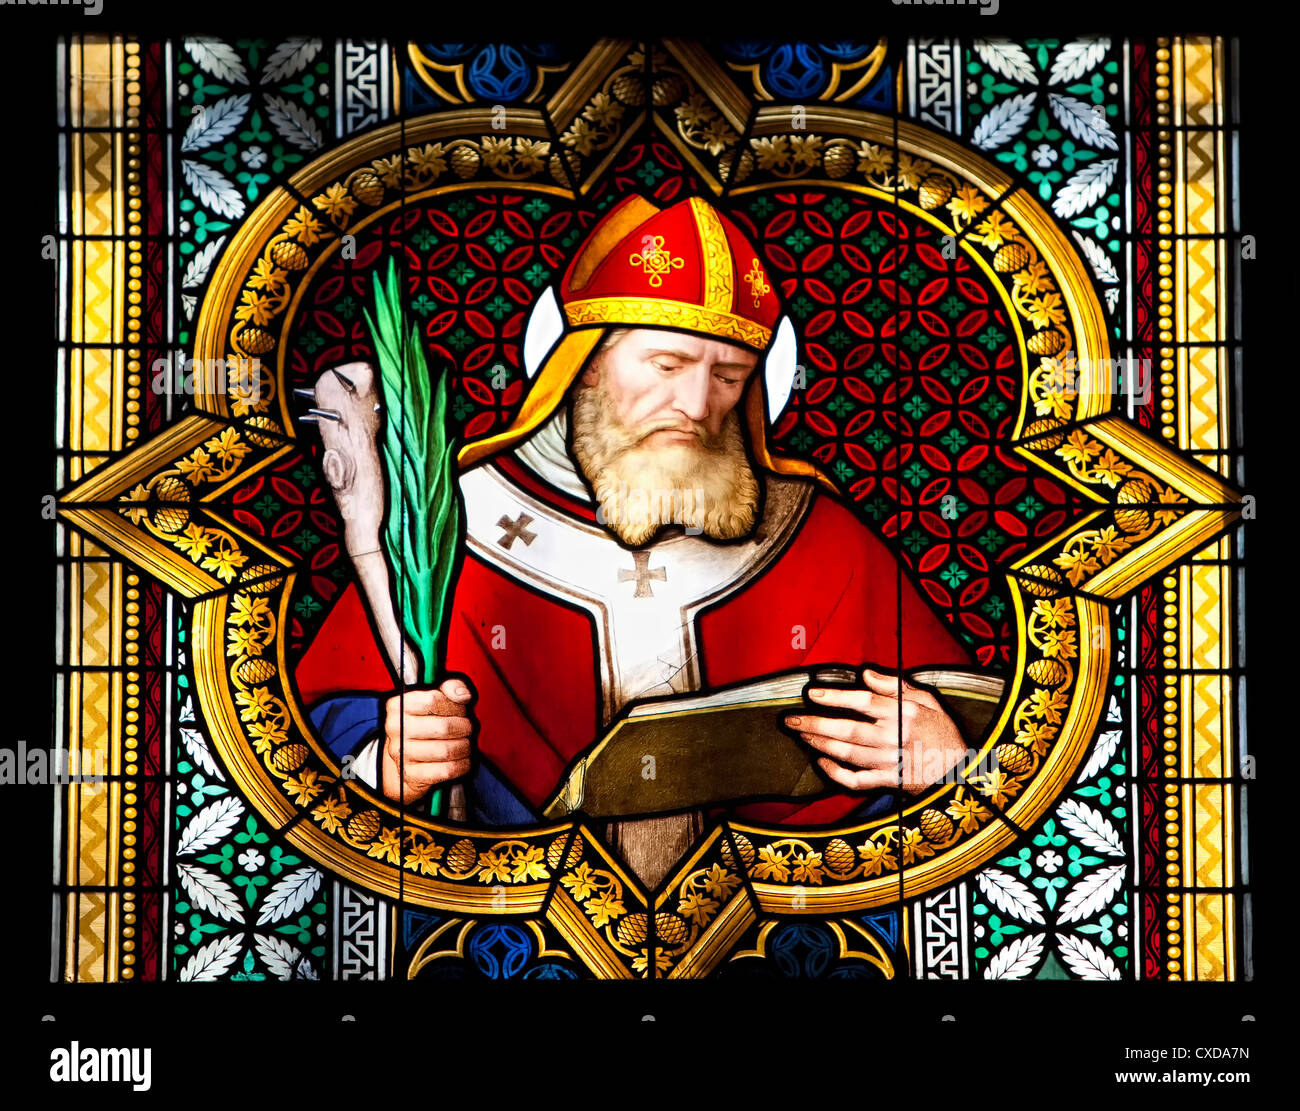 Coloured Stained Glass Stock Photos & Coloured Stained Glass Stock ...